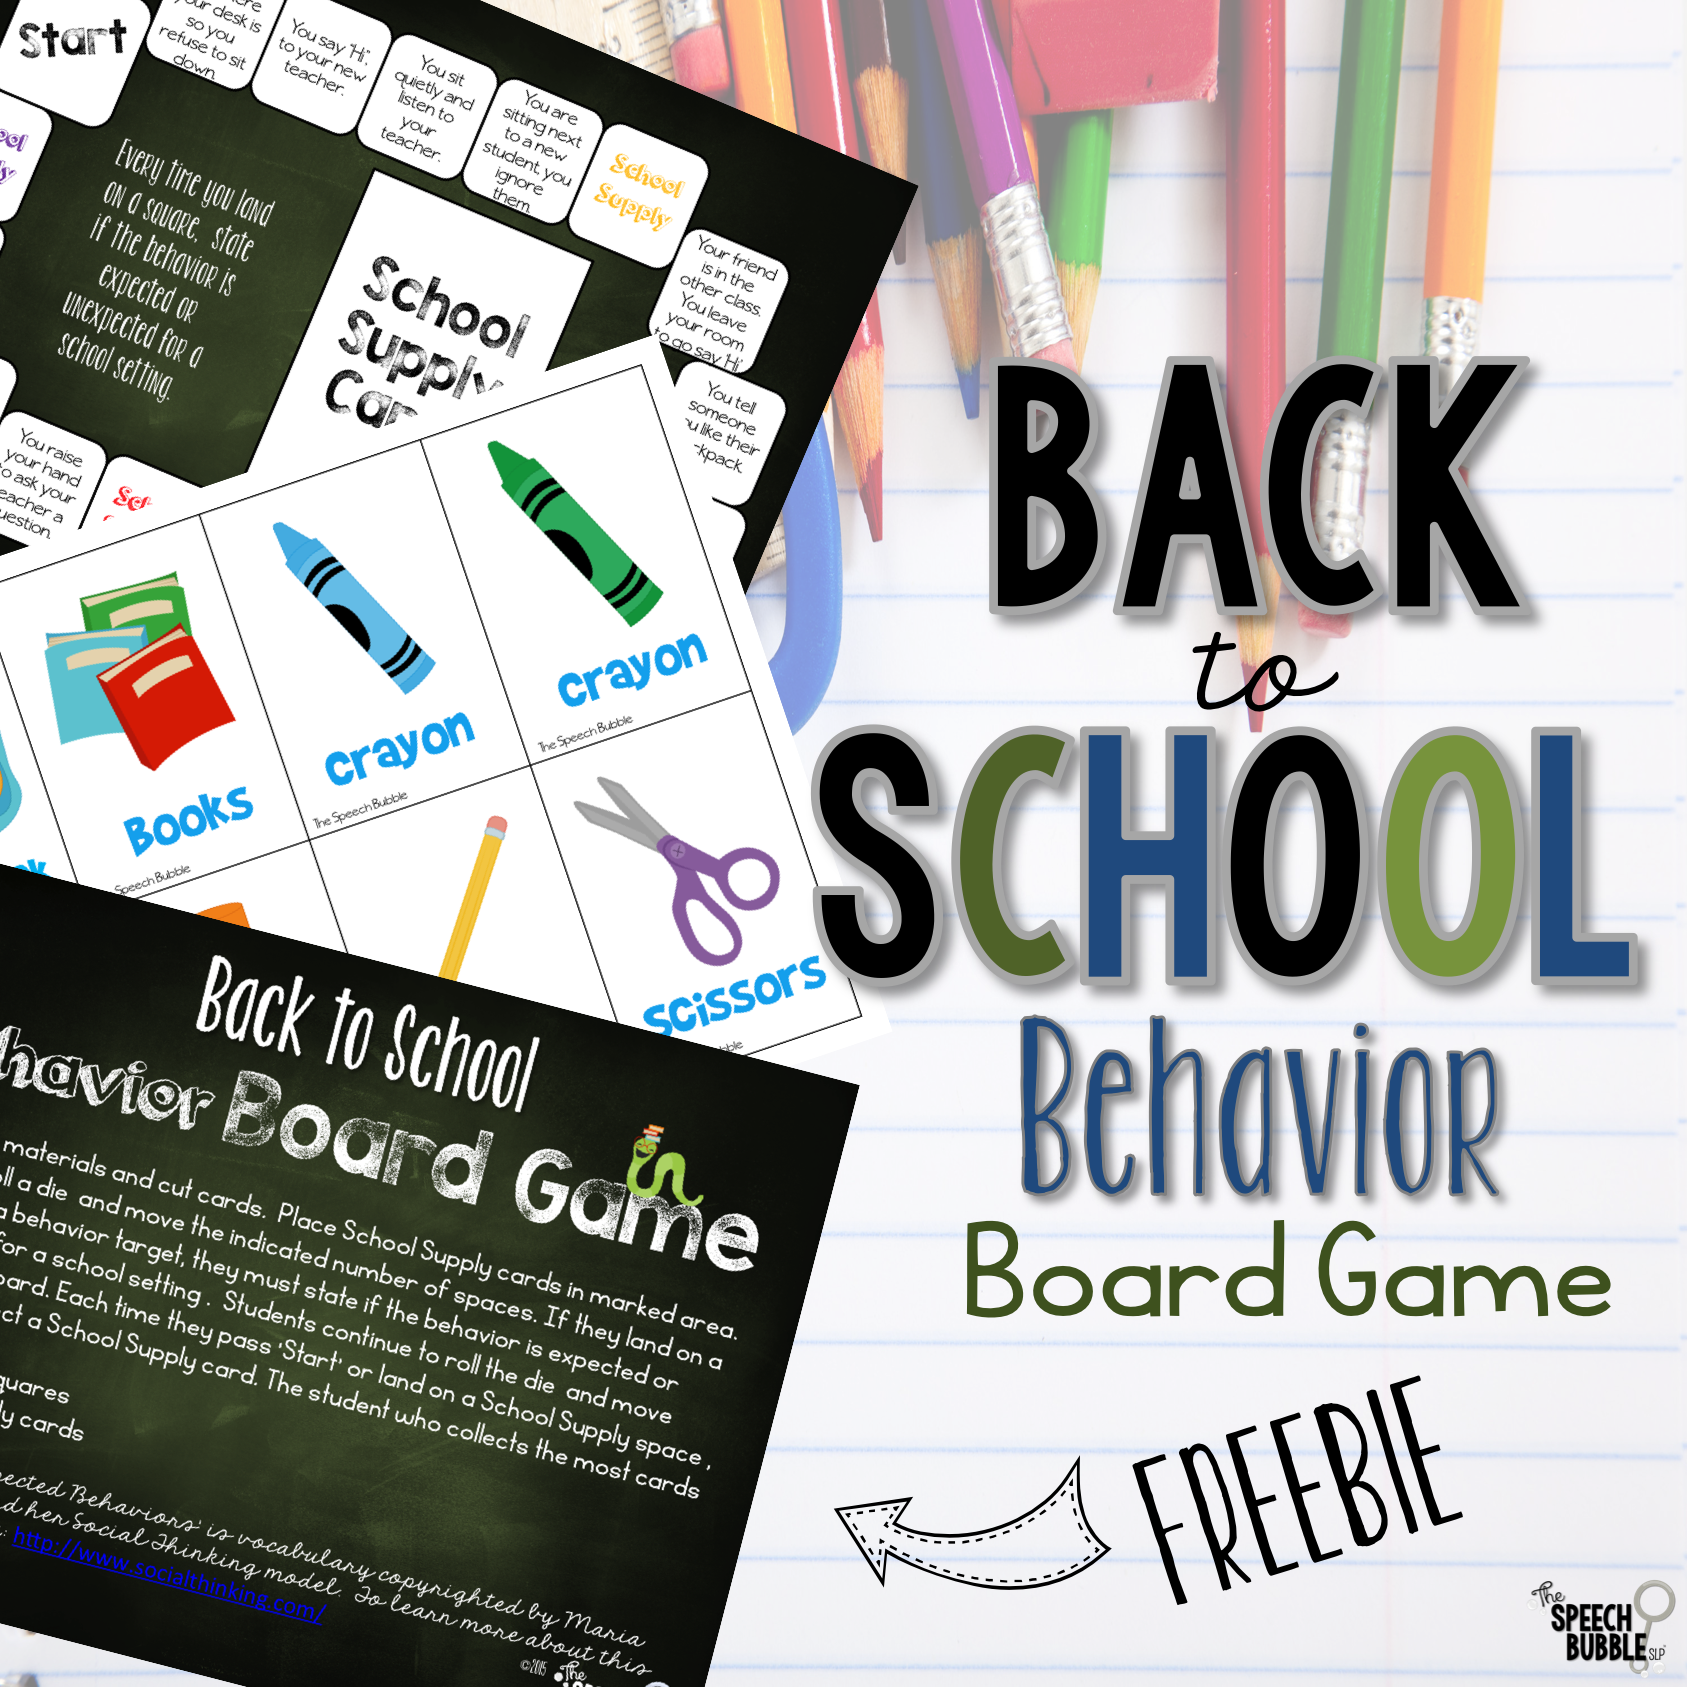 Back to School Behavior Freebie!